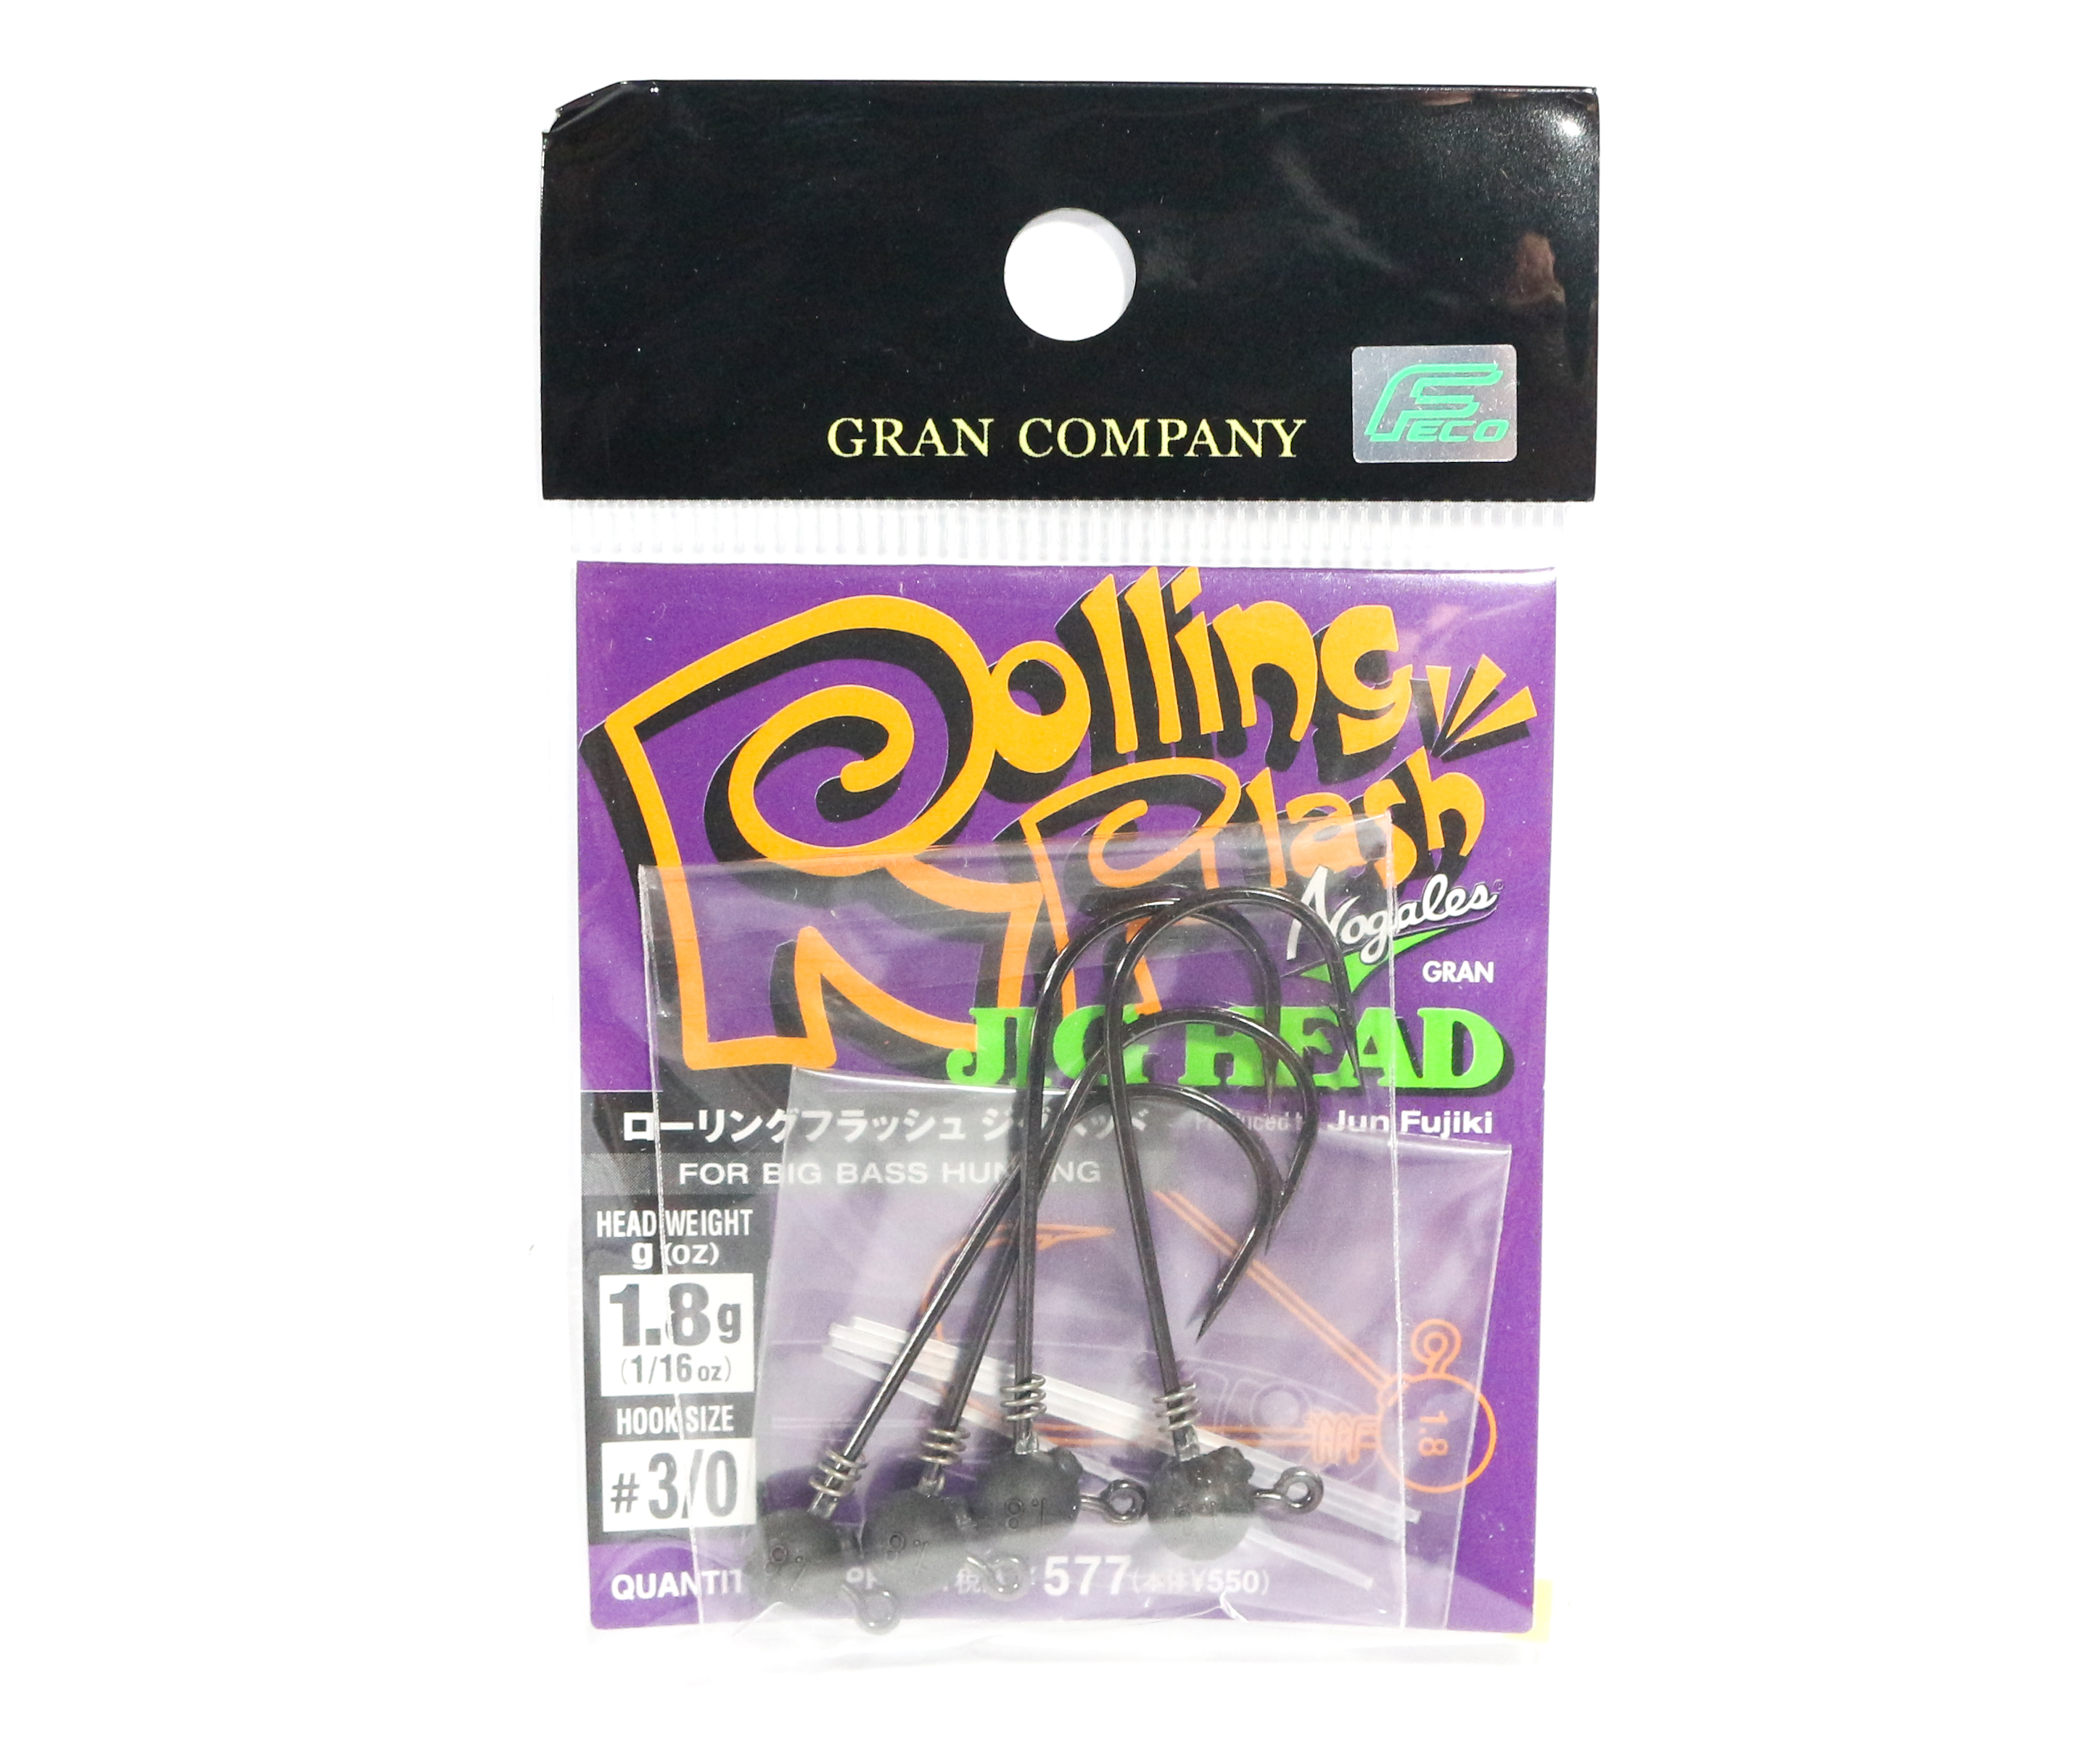 Sale Varivas Nogales Rolling Flash Jig Head 1.8g Size 3/0 (5415)